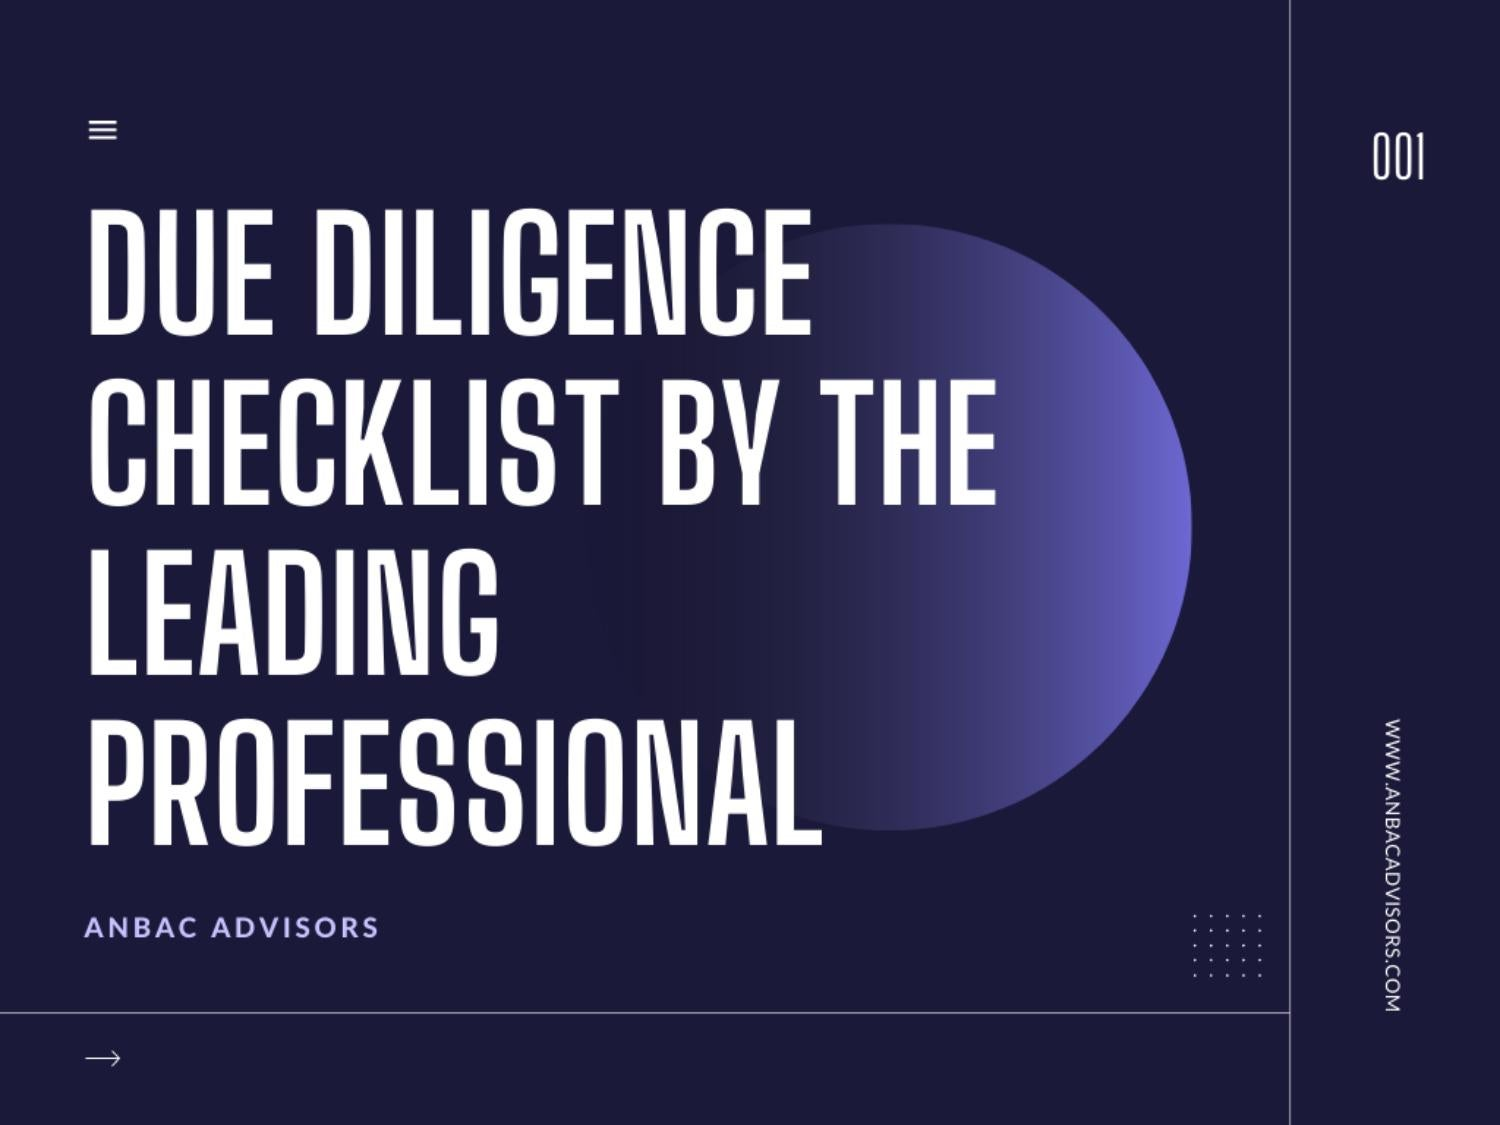 Due diligence checklist by the leading professional